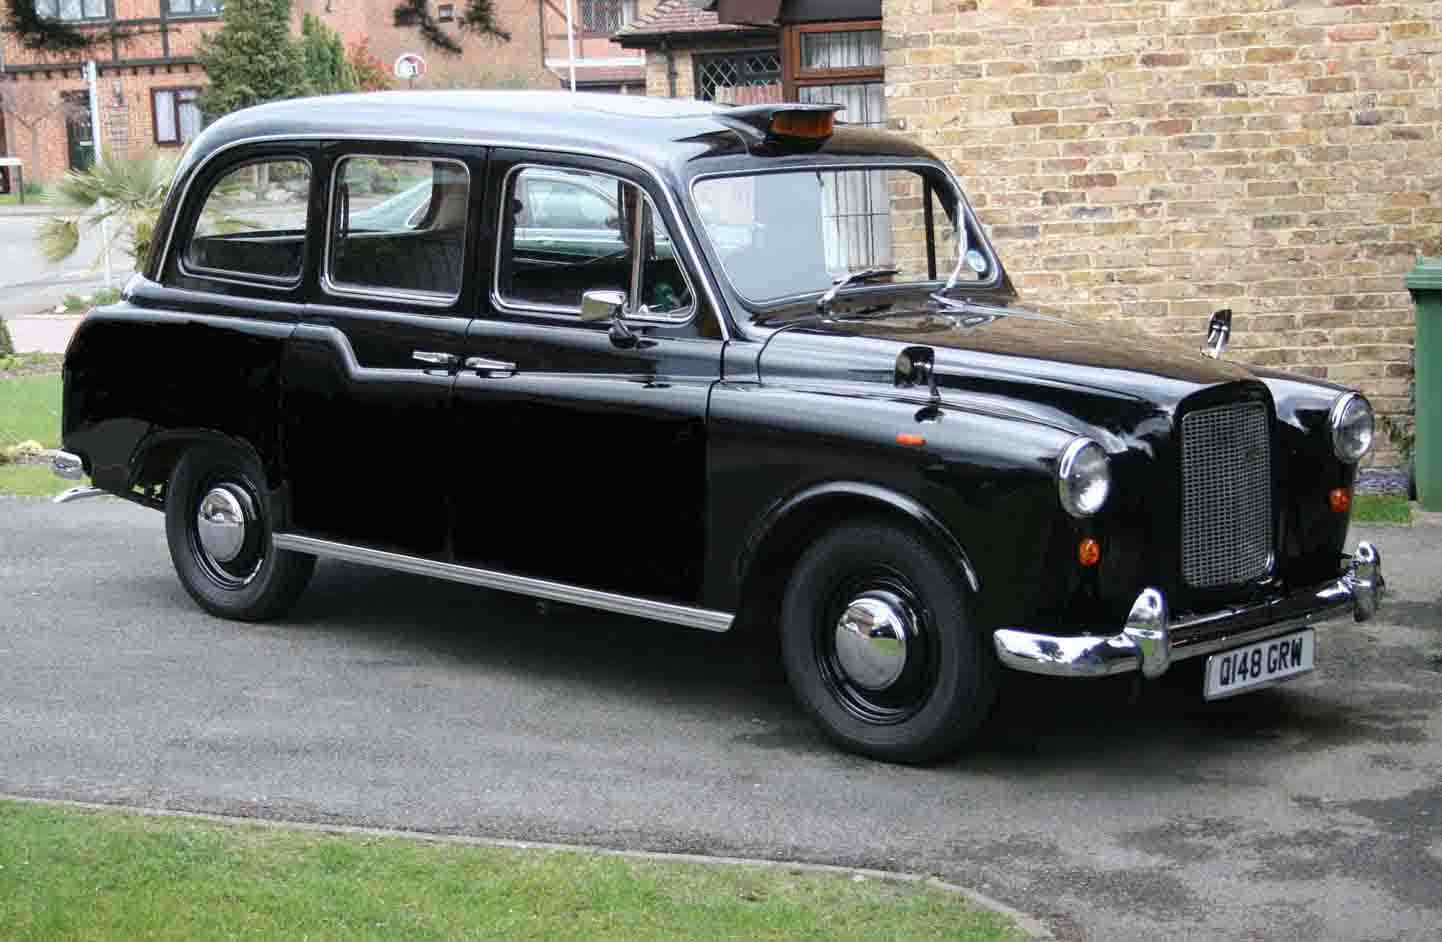 Getting Insurance as a Black Cab Driver